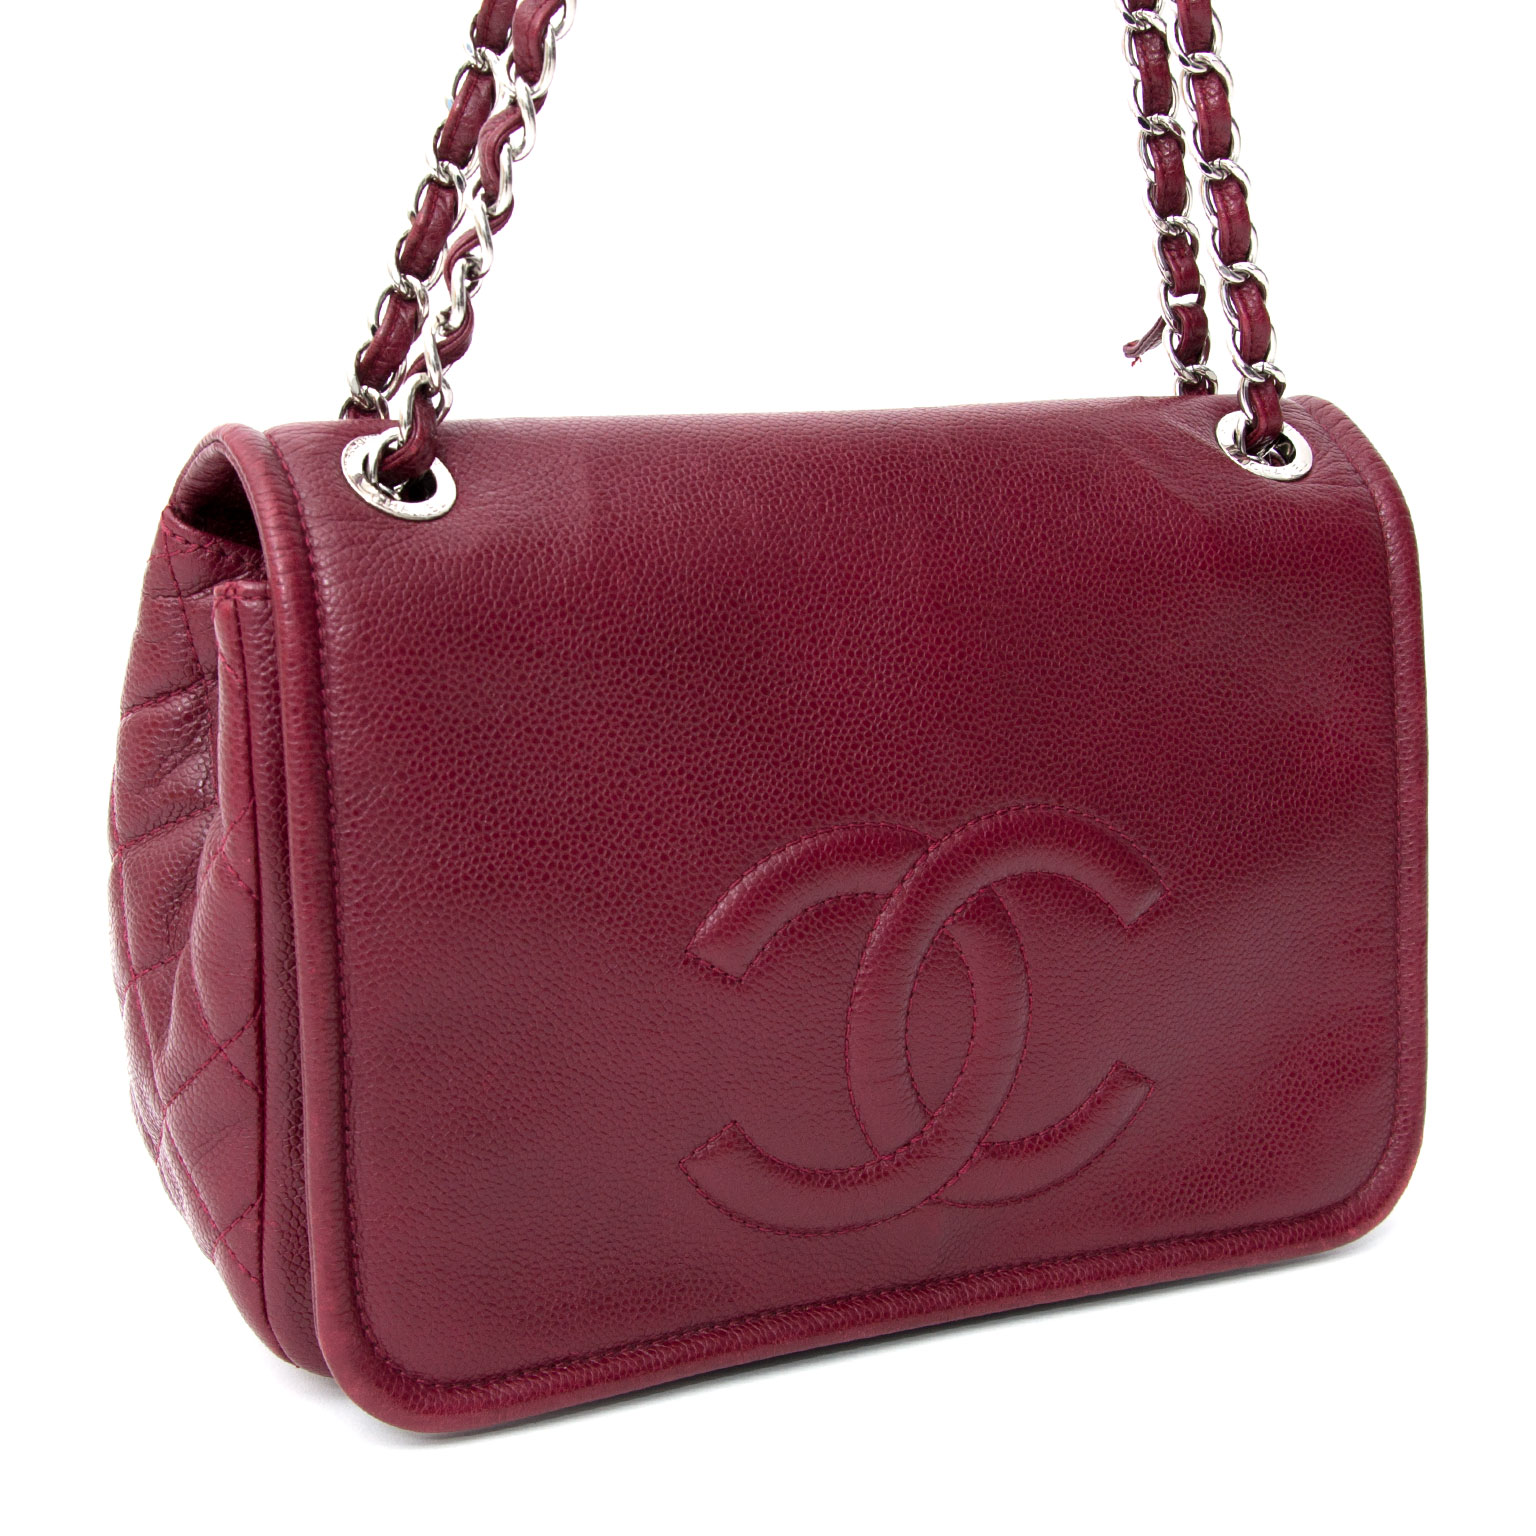 42740d215ea3 Buy safe online secondhand designer Chanel Red Caviar Timeless Chanel Red  Caviar Timeless CC Flap